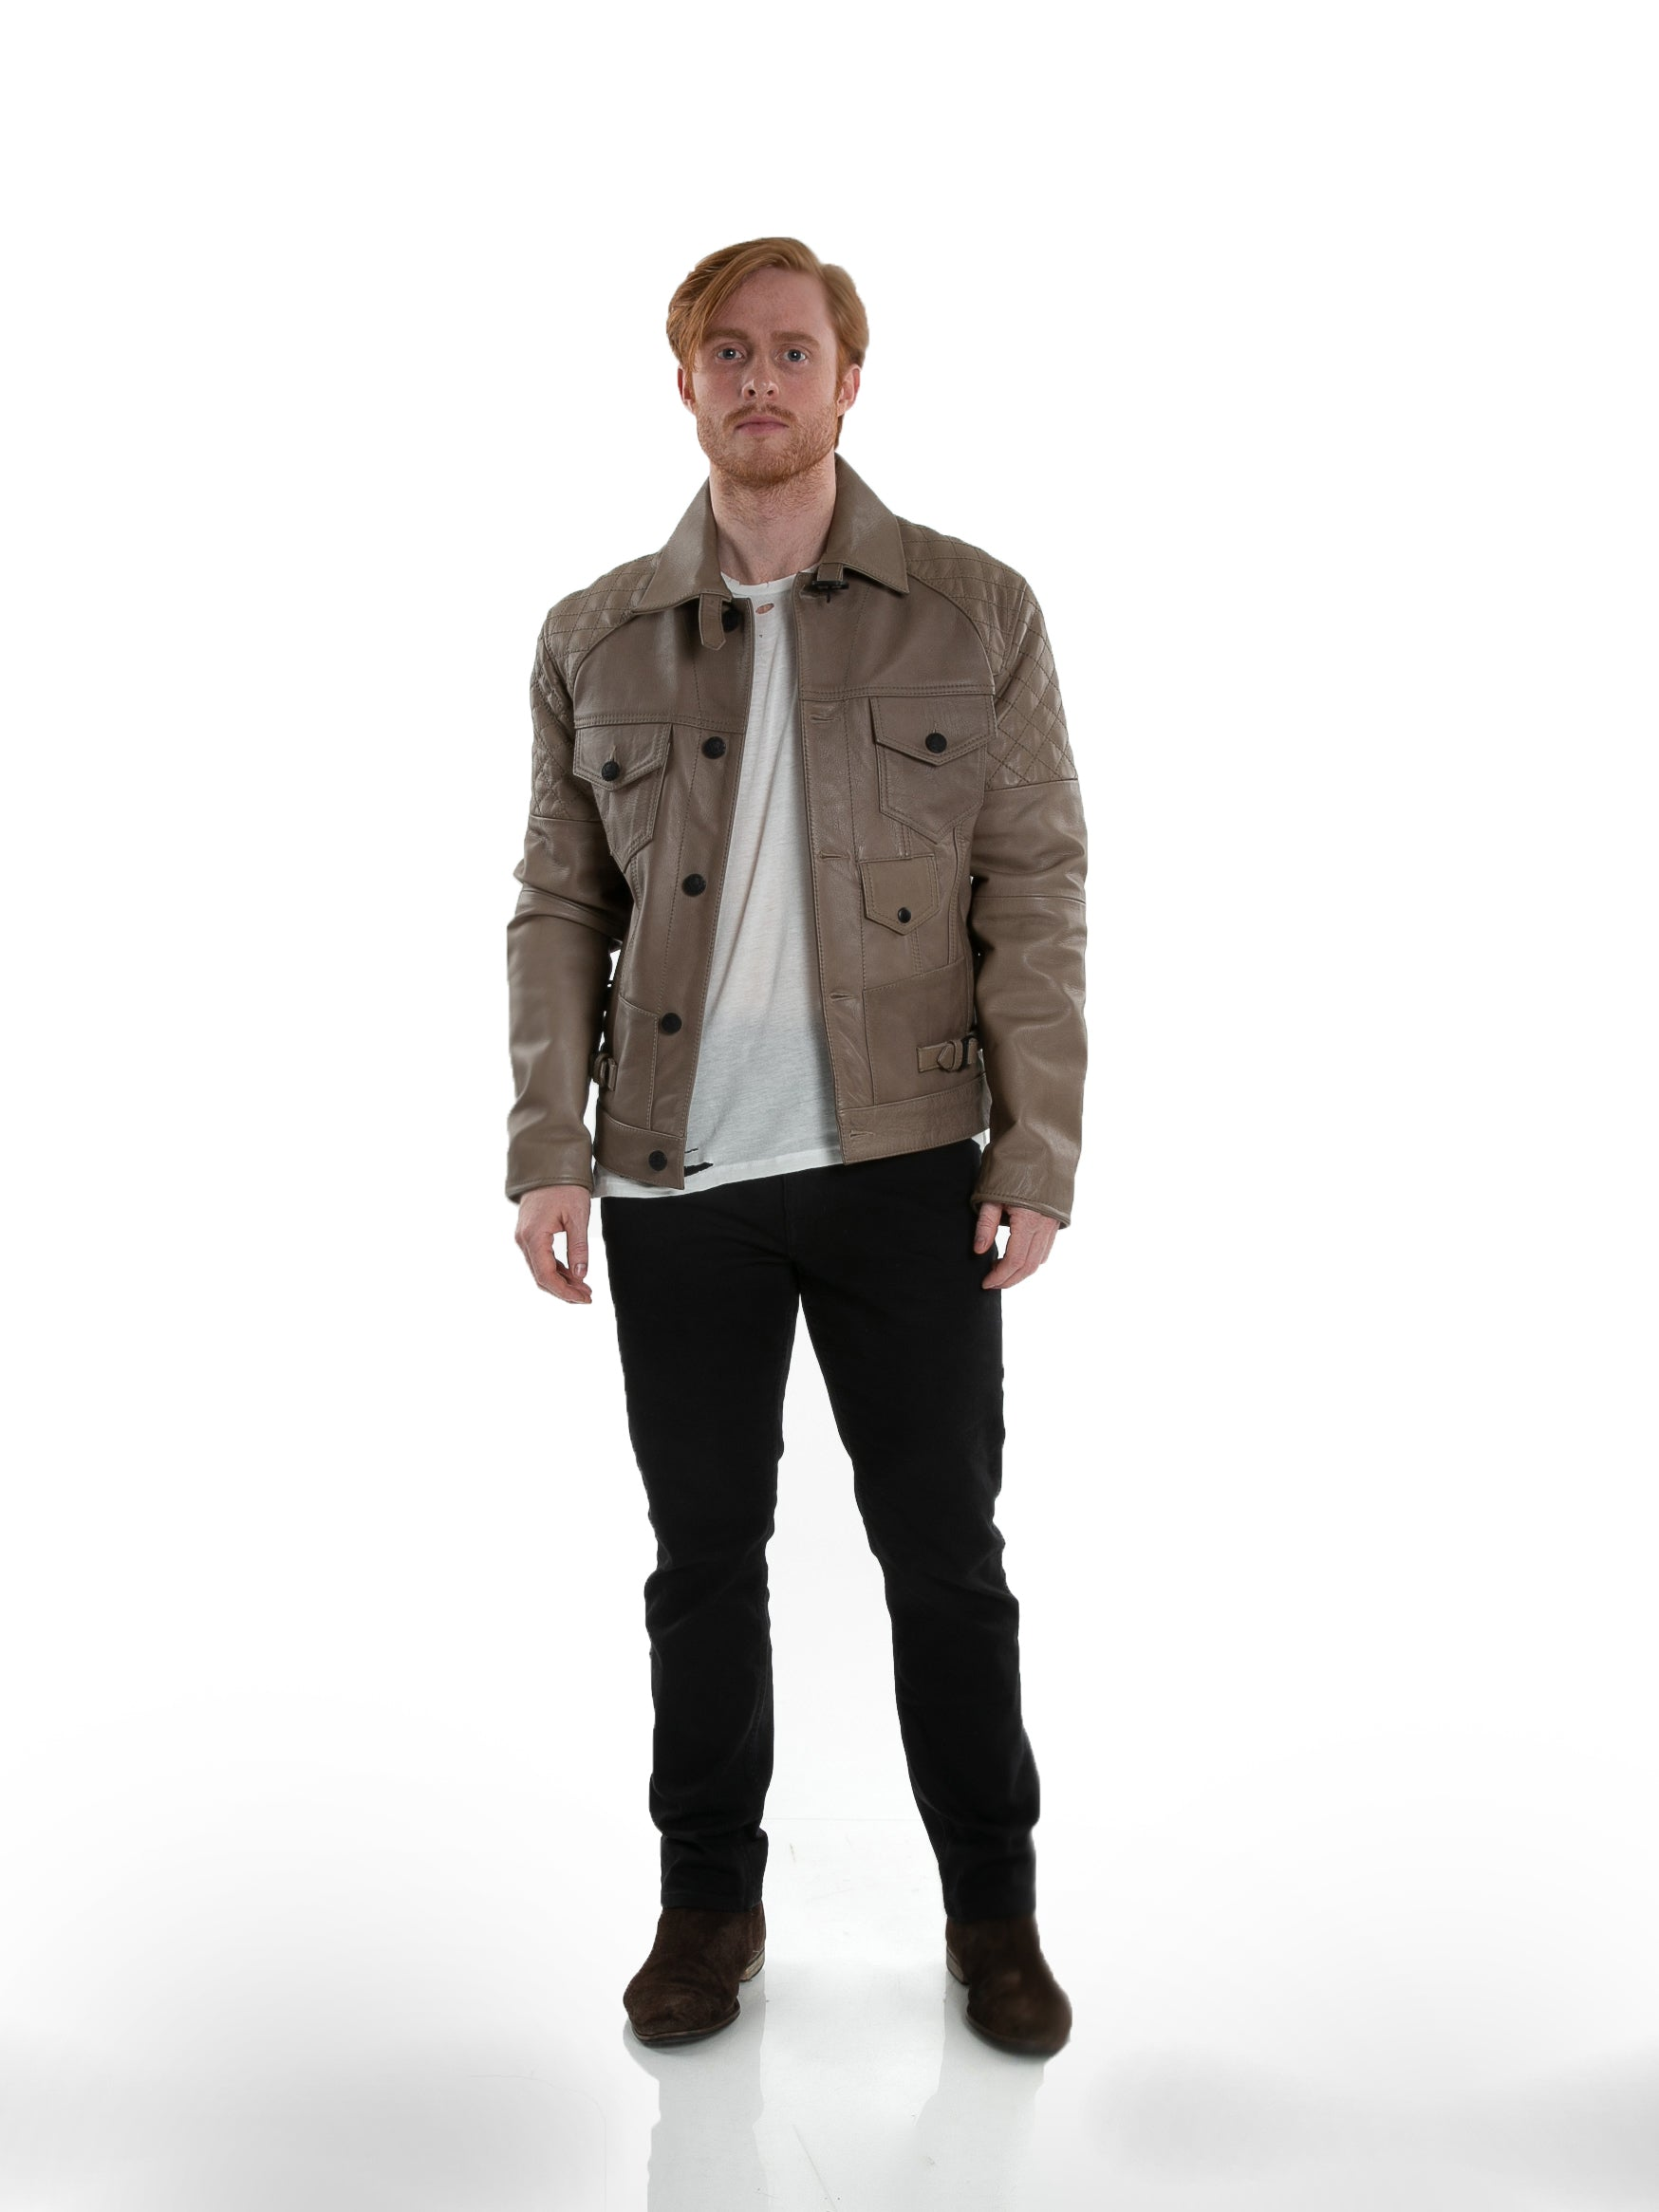 Front of male model wearing Grindstone leather jacket